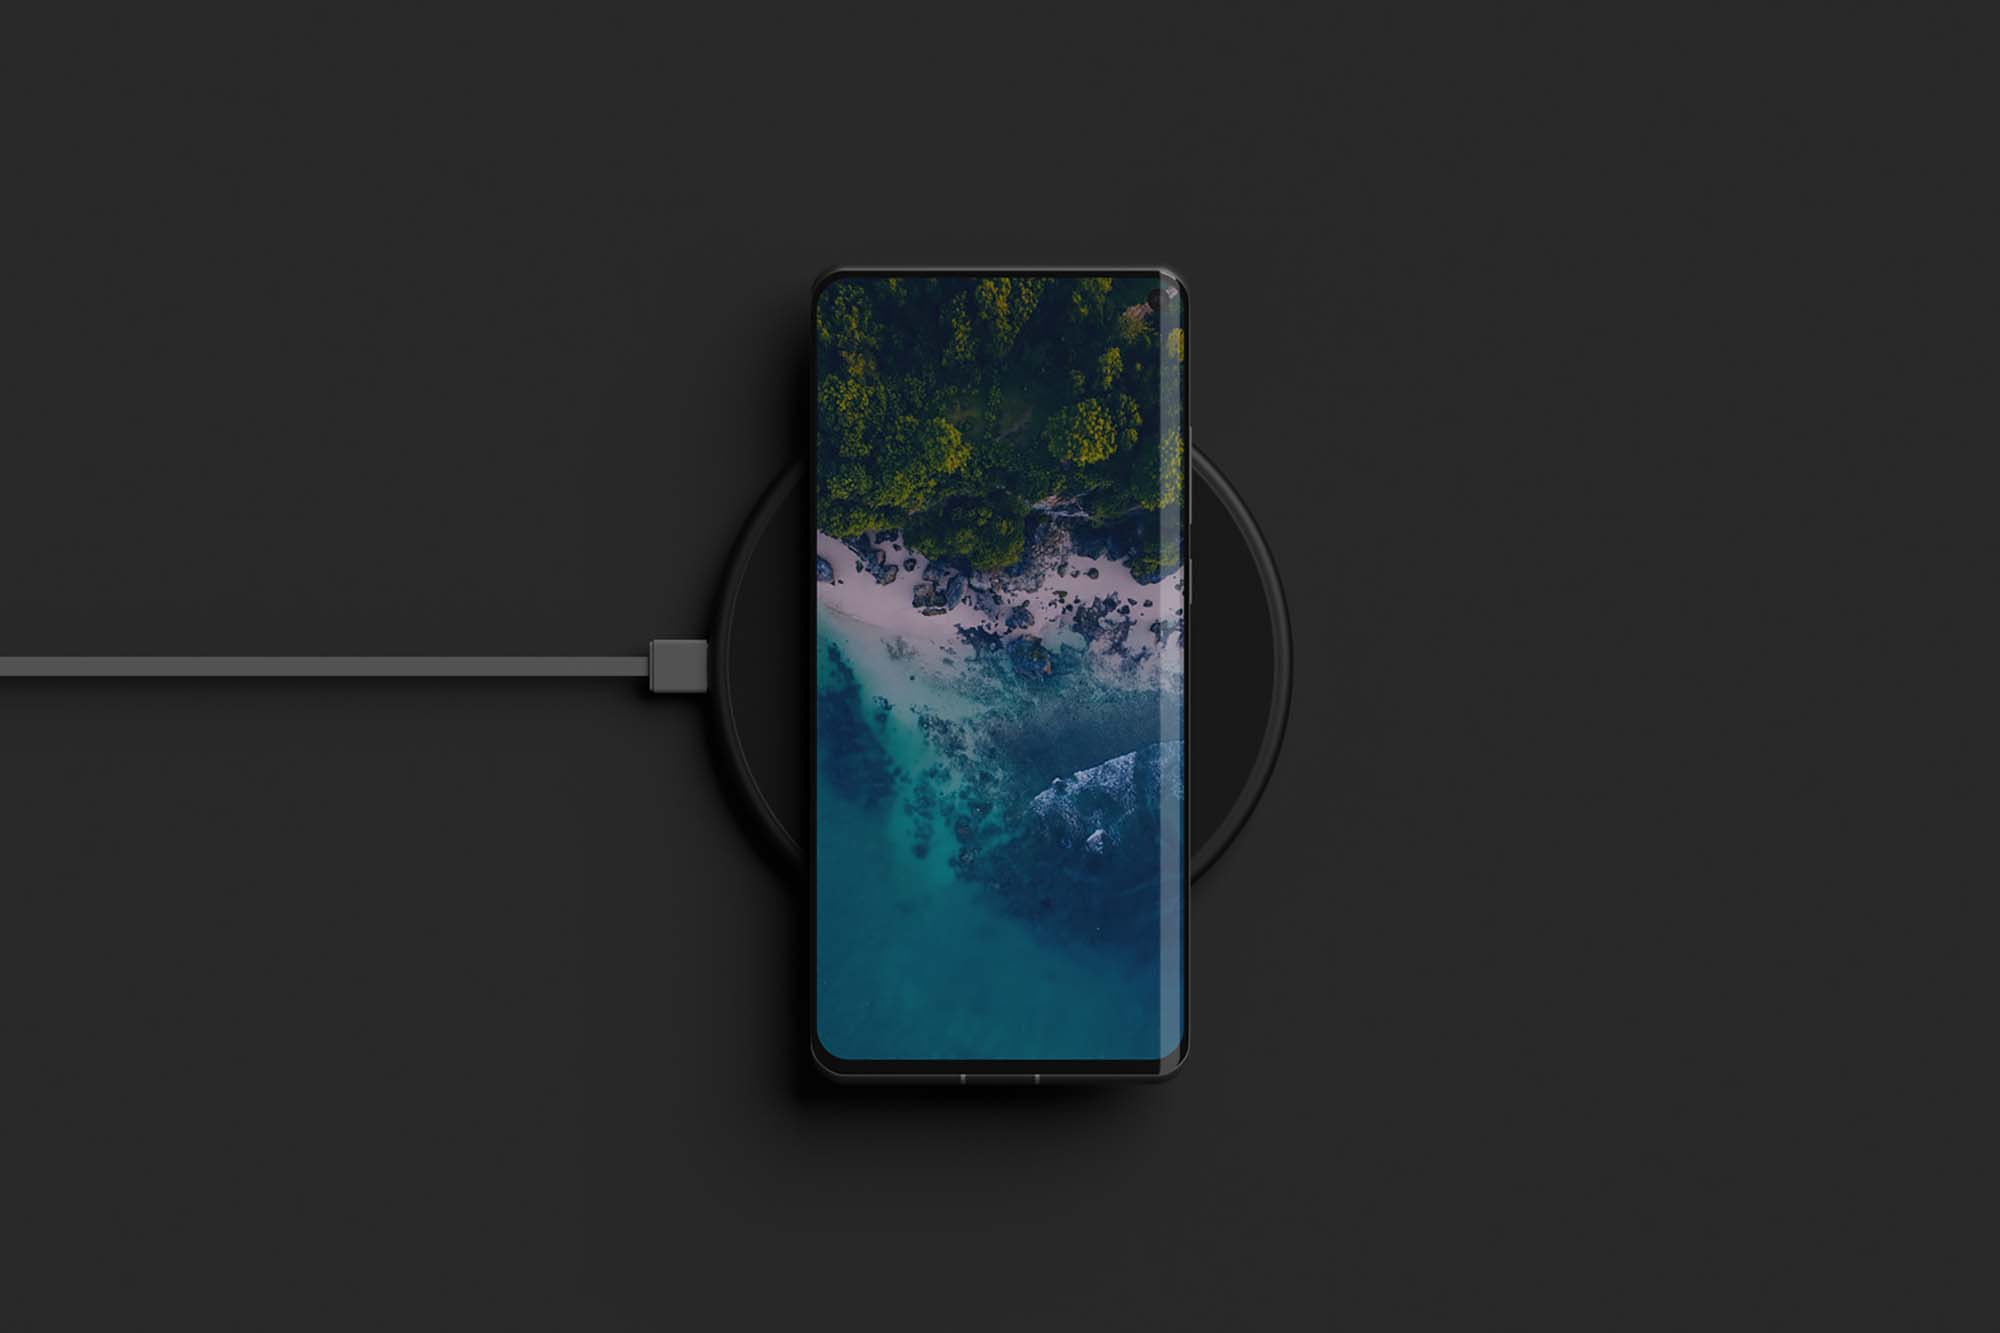 Phone on Wireless Charger Mockup